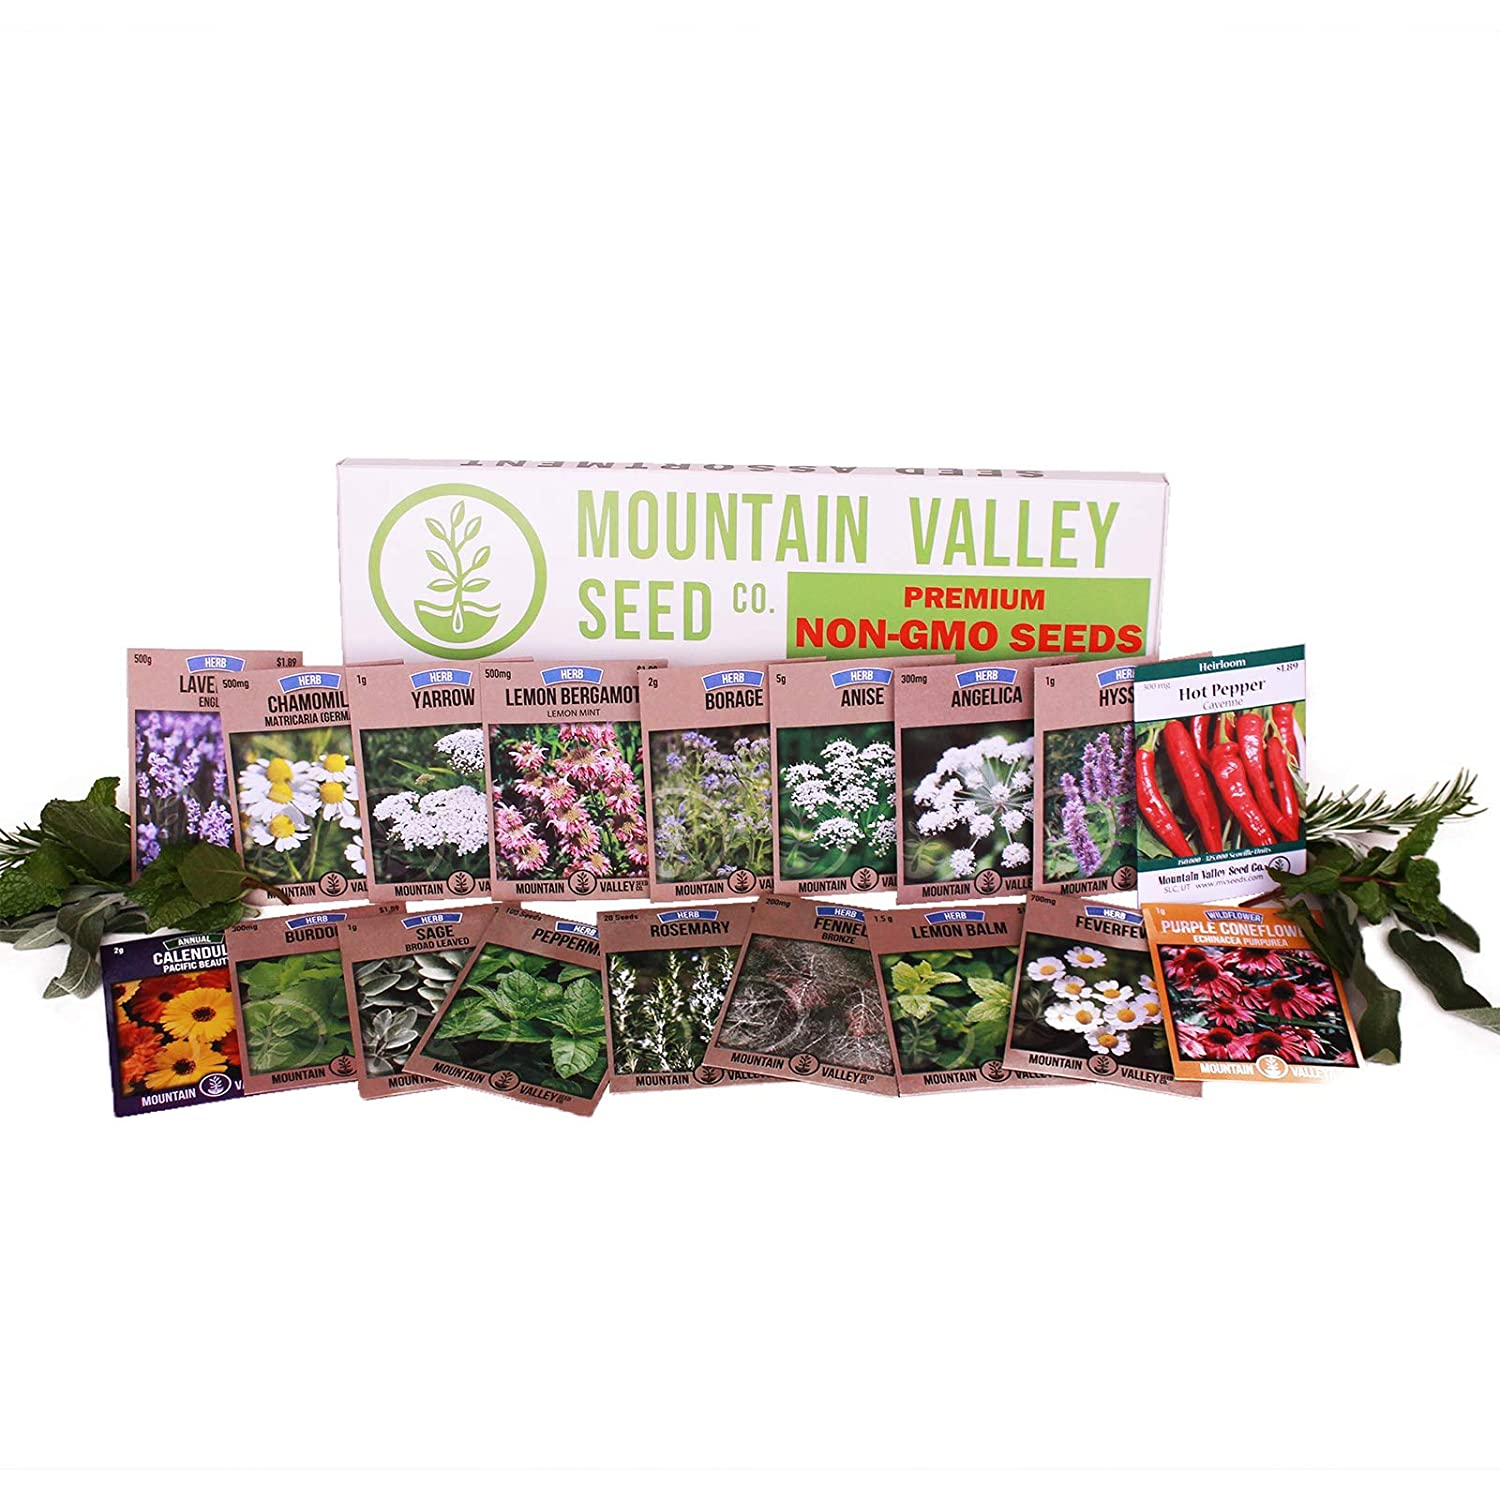 Medicinal & Herbal Tea Garden Seed Collection   Premium Assortment   18 Non-GMO Herb Seed Packets: Angelica, Borage, Cayenne, Burdock, Fever Few, Peppermint, More